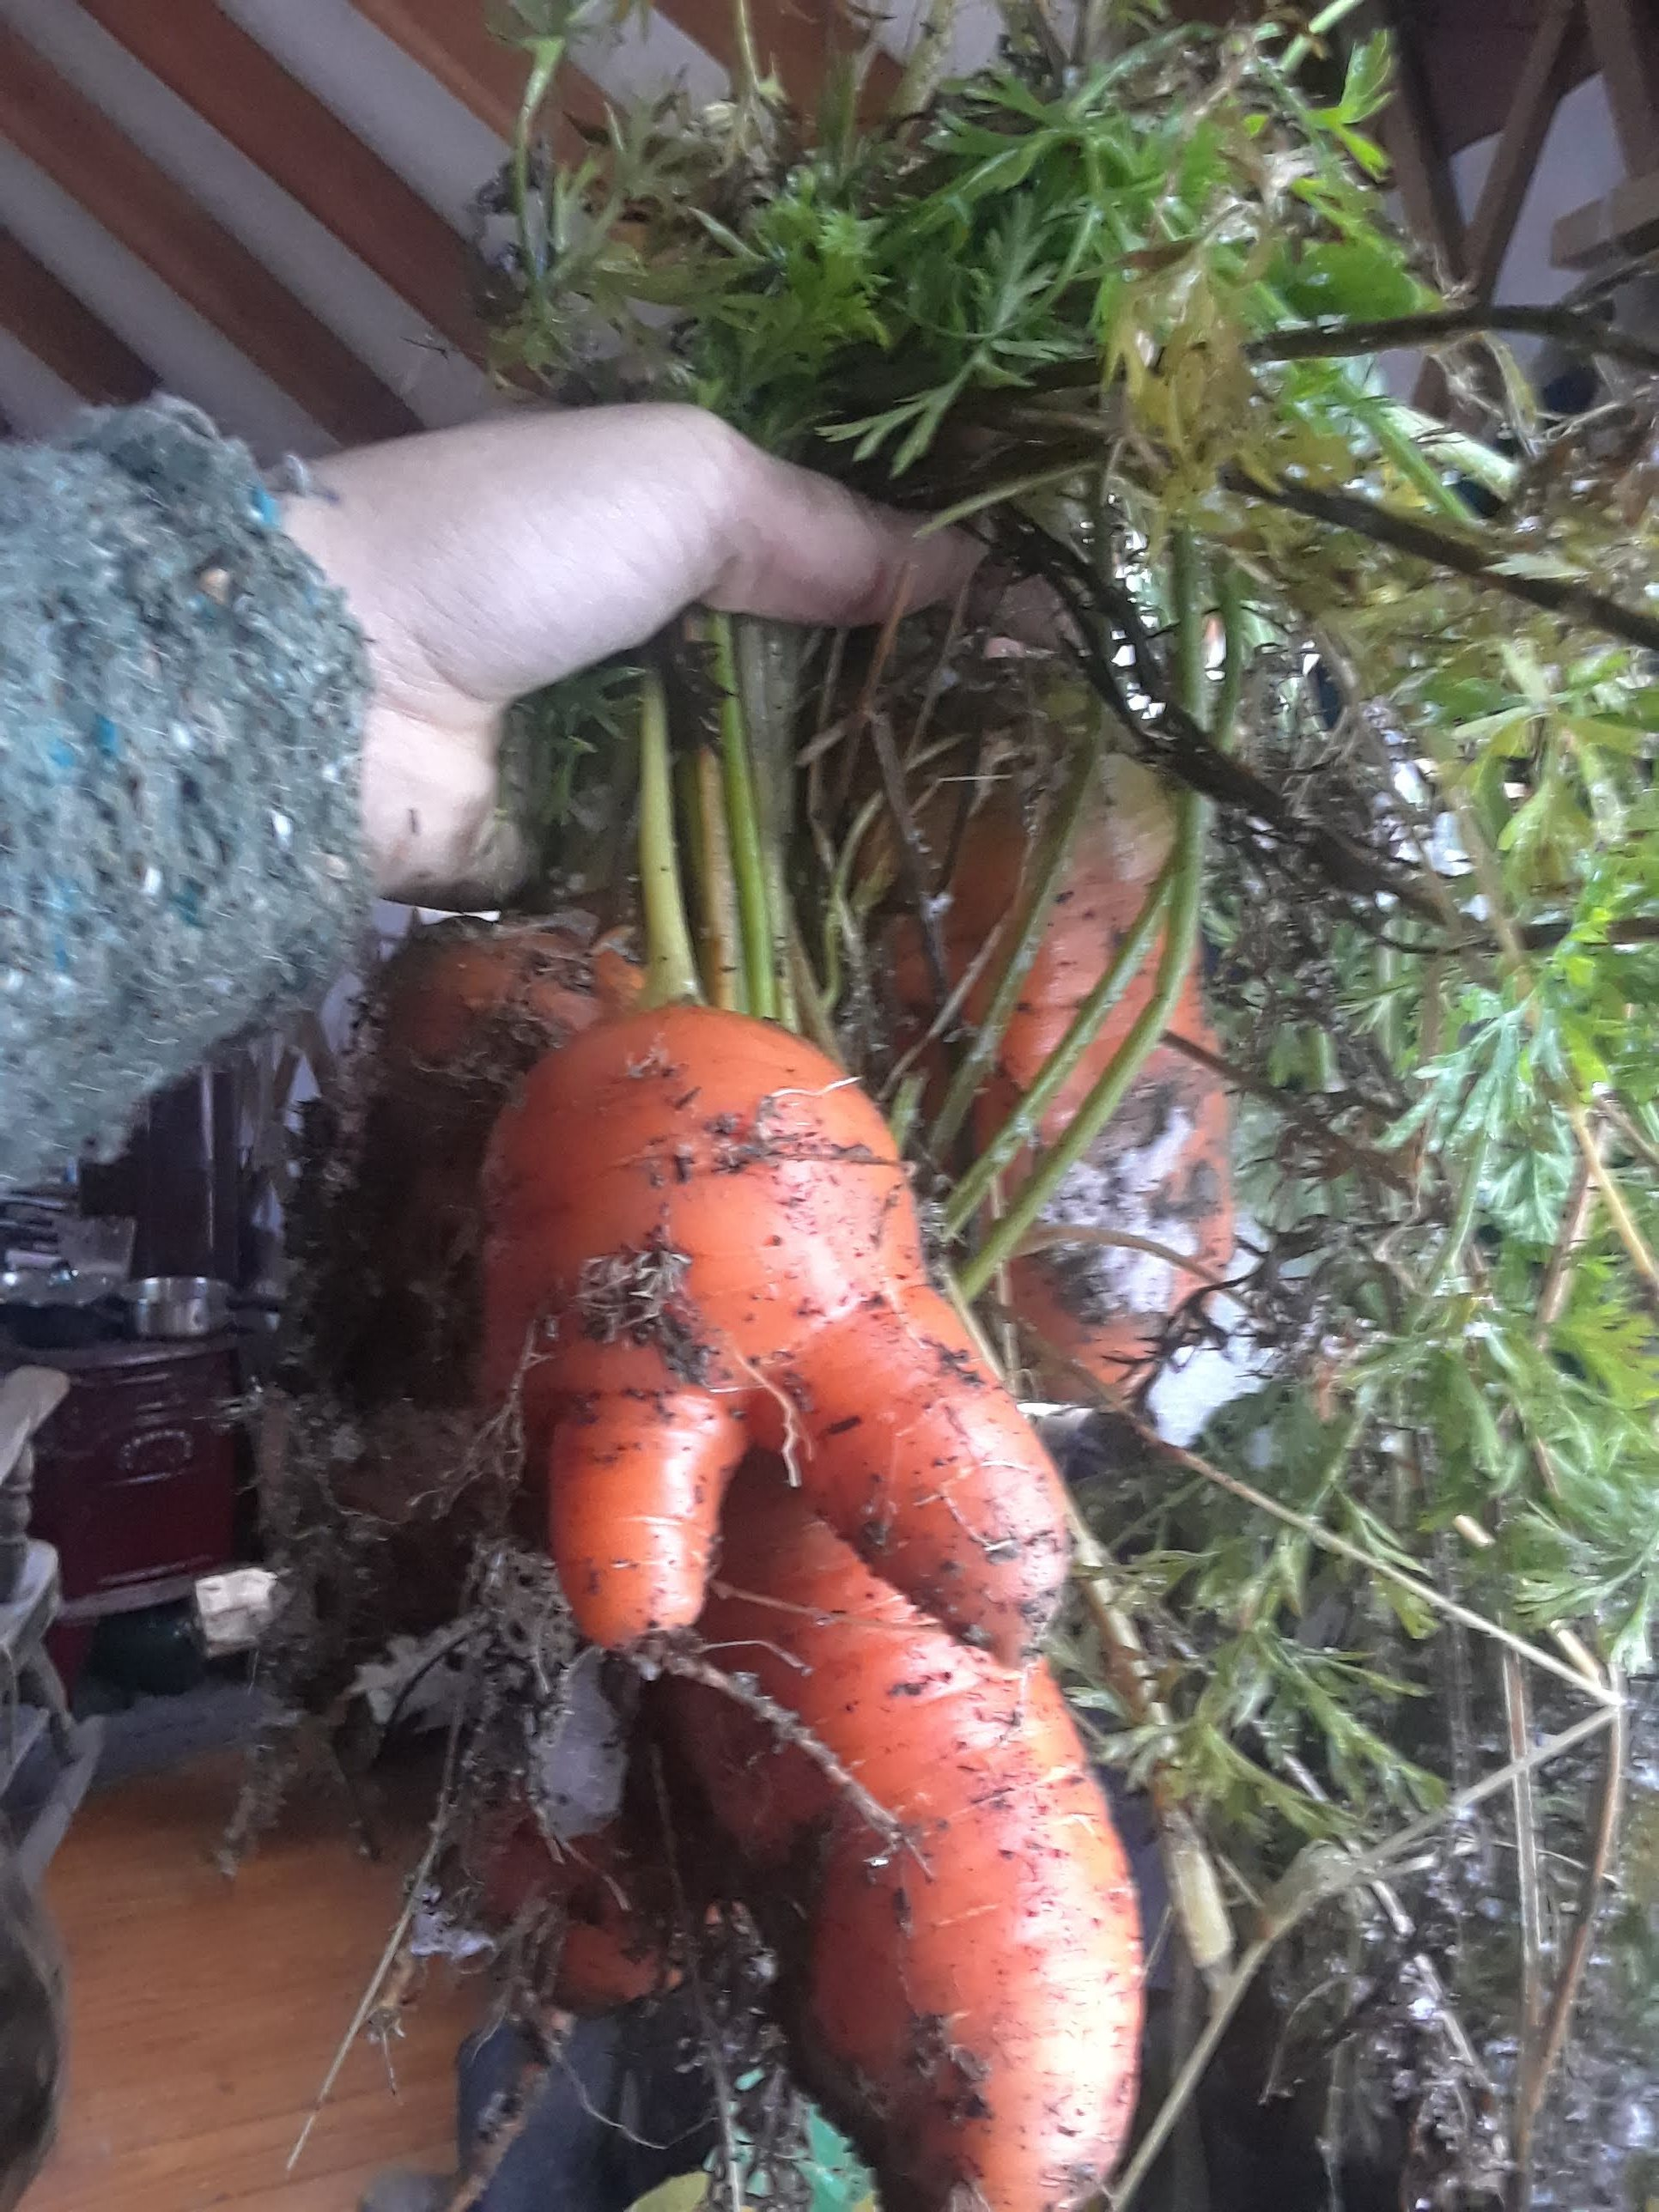 Who says you can't give thanks to a garden harvest in November? Carrots dug fresh from the snow - err…soil for our meal today.